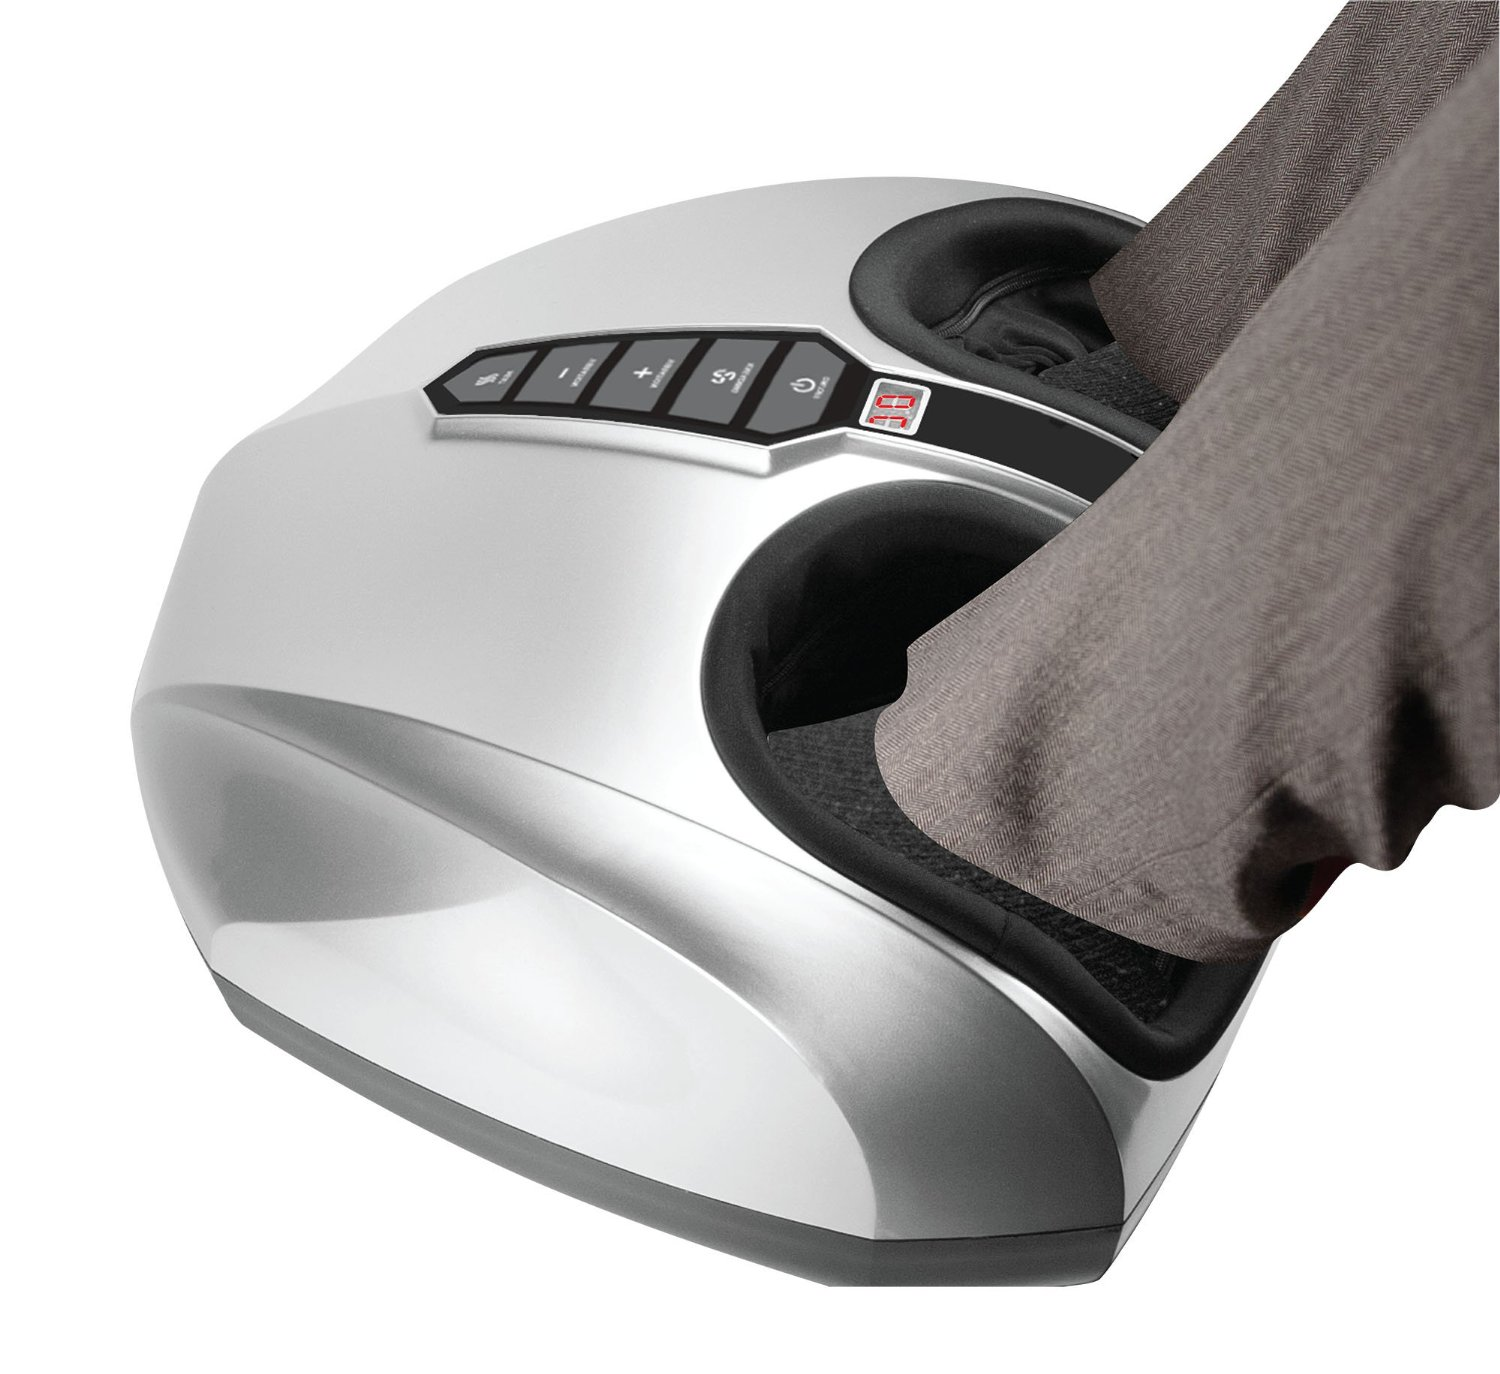 Best-Foot-Massager